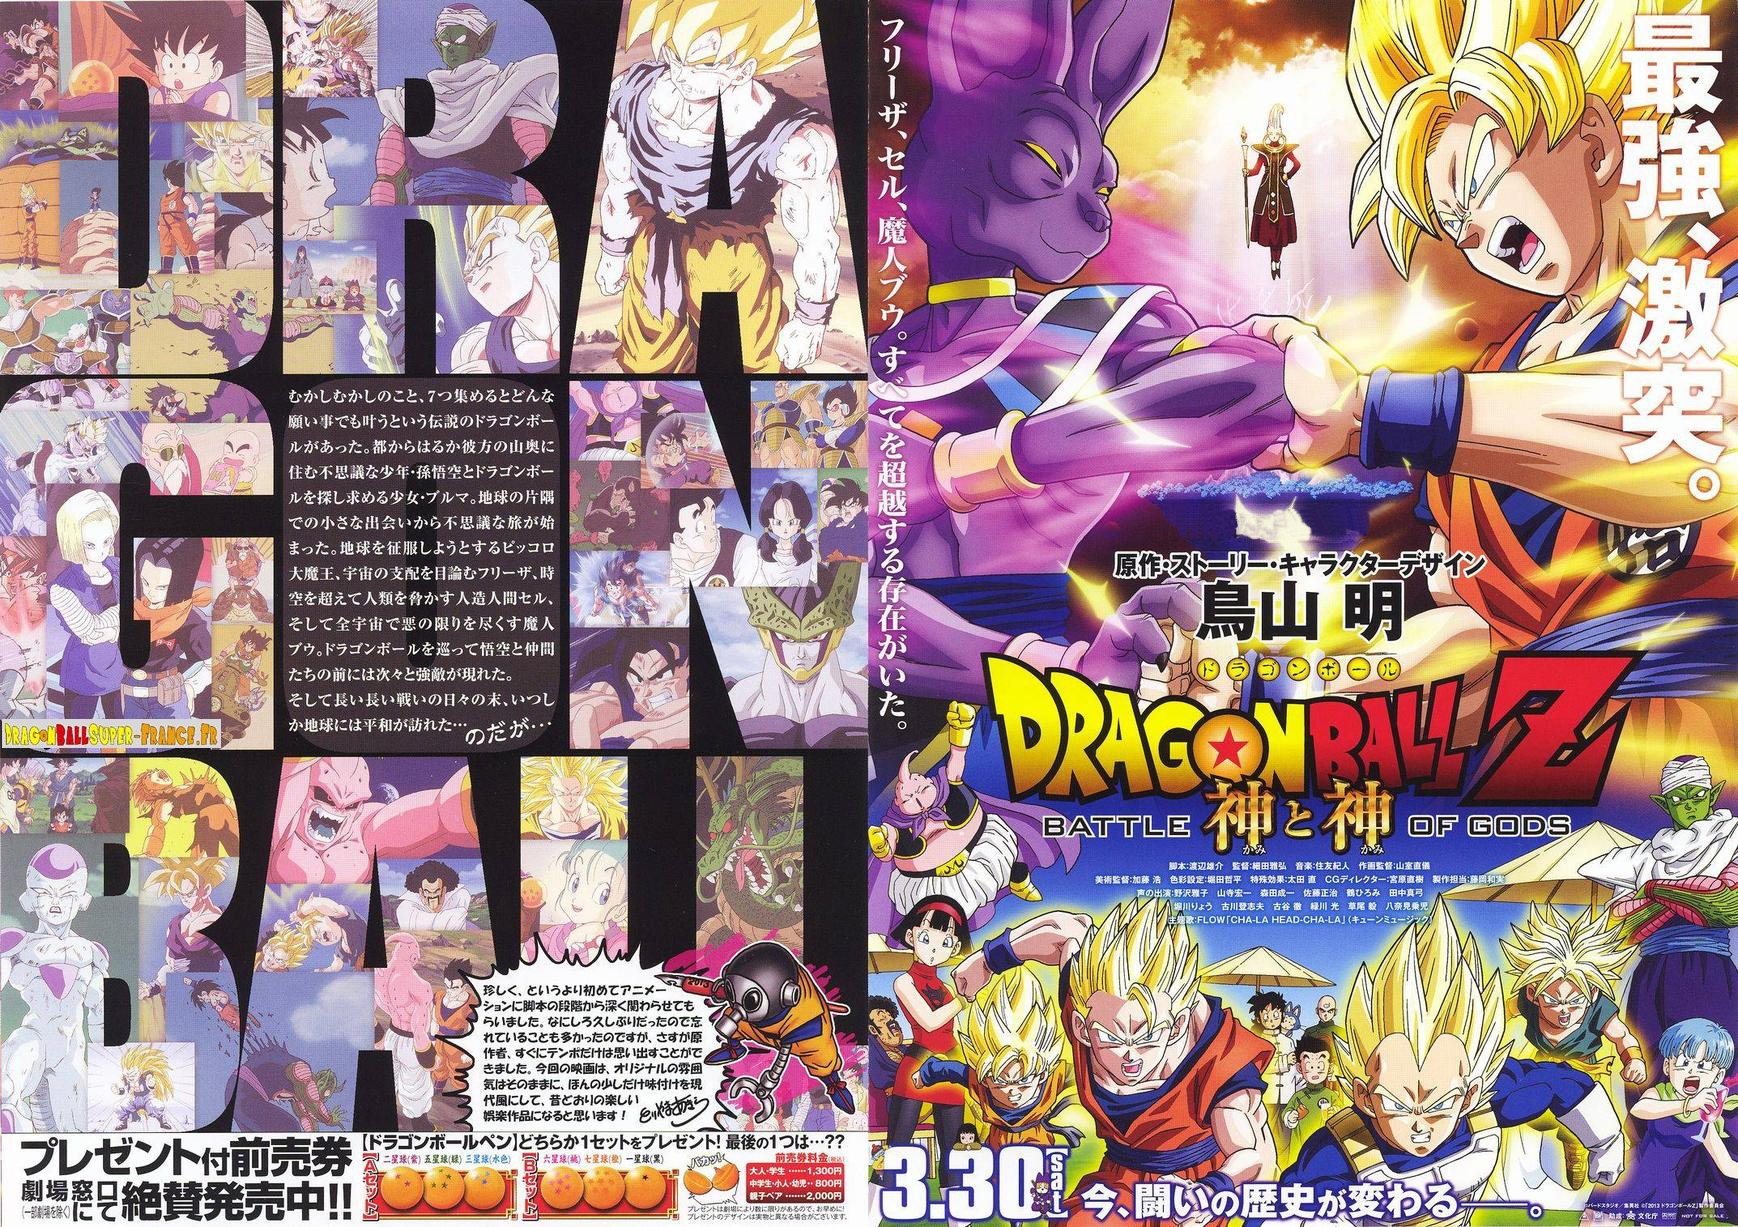 Le message de Toriyama pour la sortie en DVD BluRay de Dragon Ball Z Battle of Gods